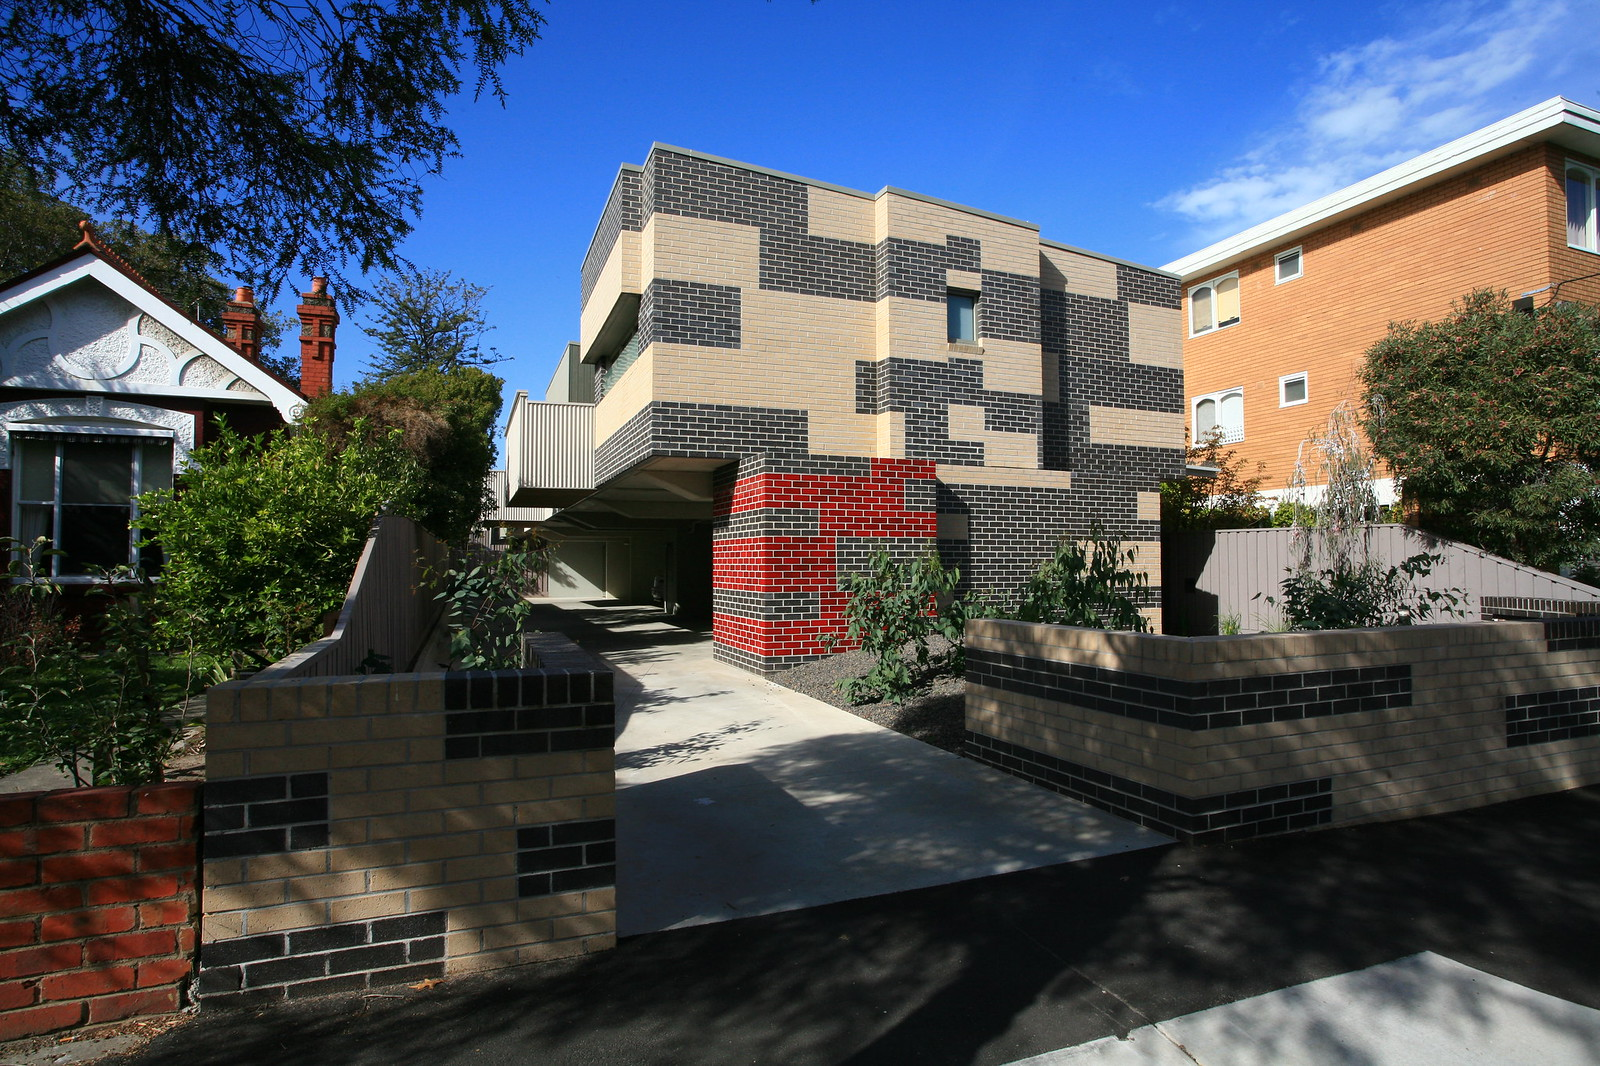 St Kilda East Apartments, Melbourne, Vic